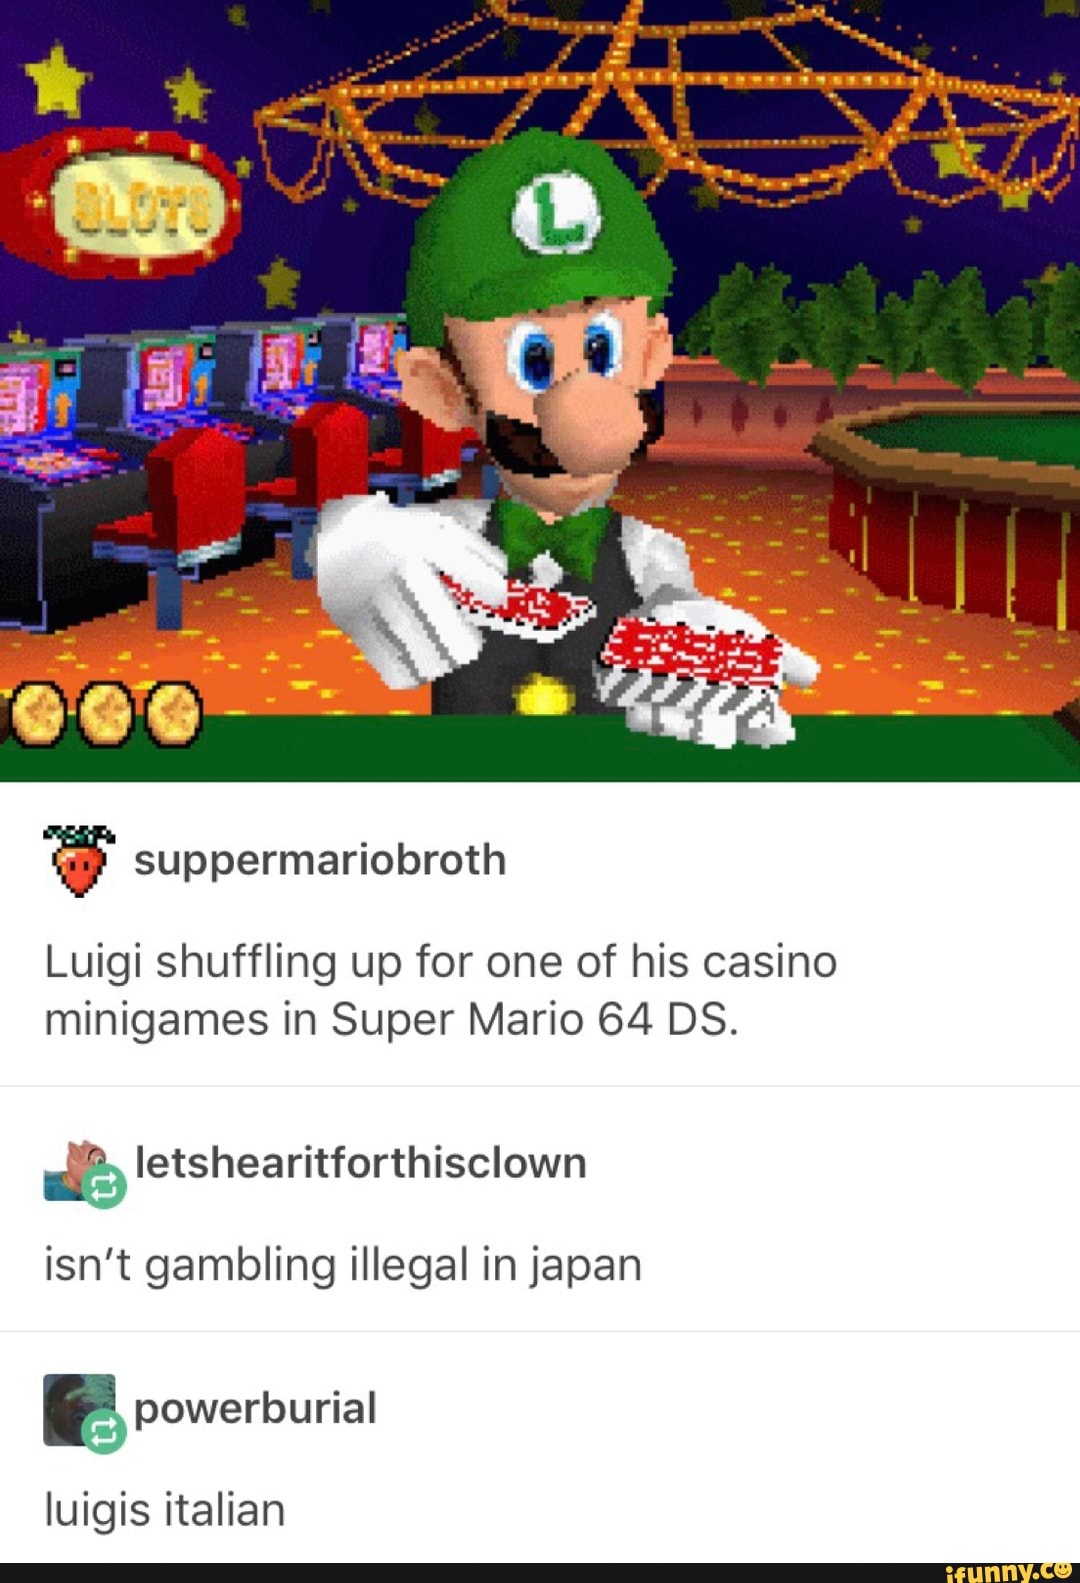 Luigi Shuffling Up For One Of His Casino Minigames In Super